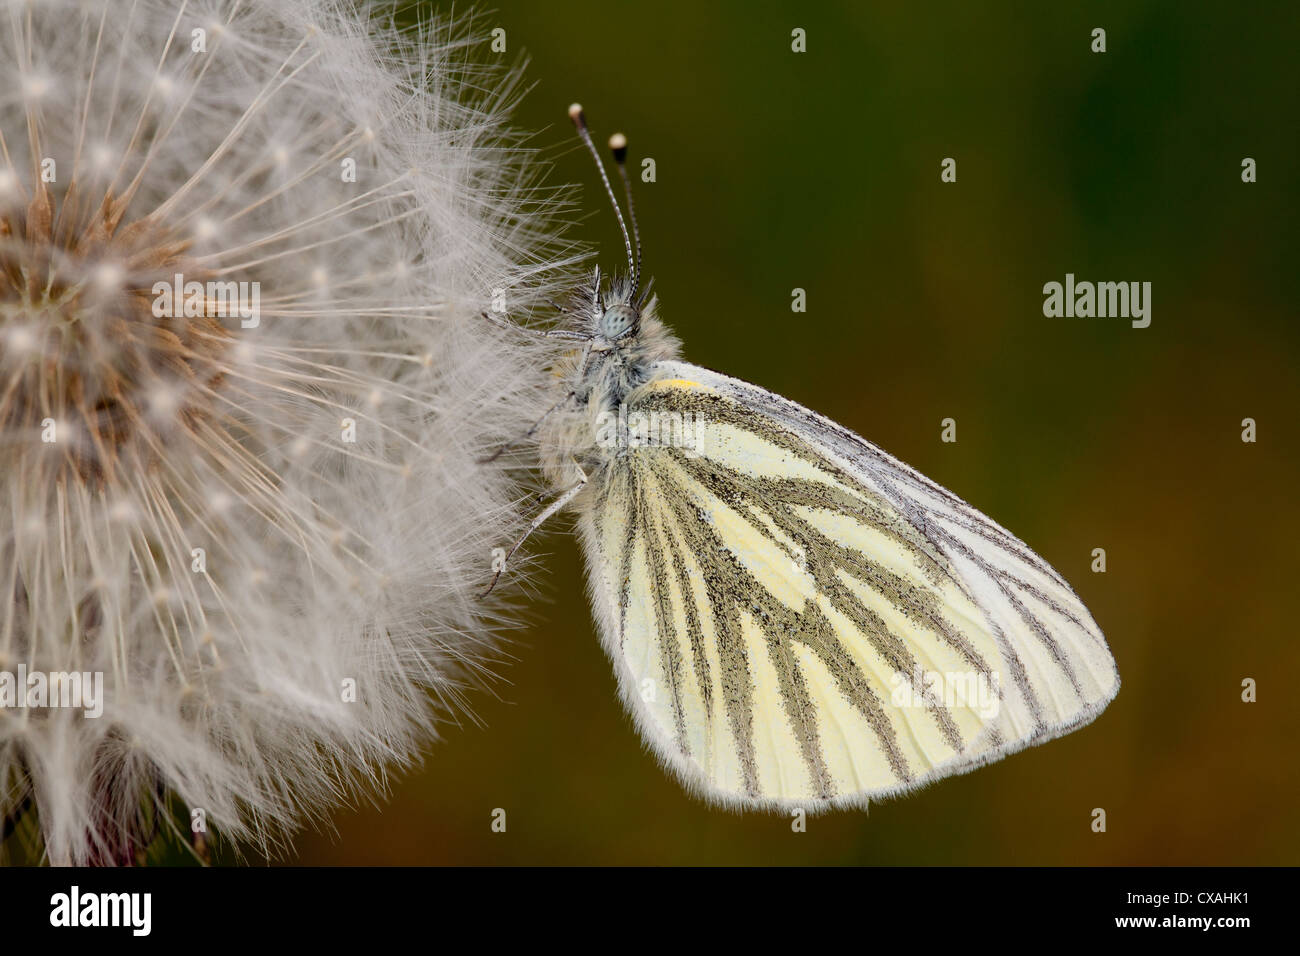 Green-veined White butterfly (Pieris napi) resting on a dandelion clock. Powys, Wales. May - Stock Image